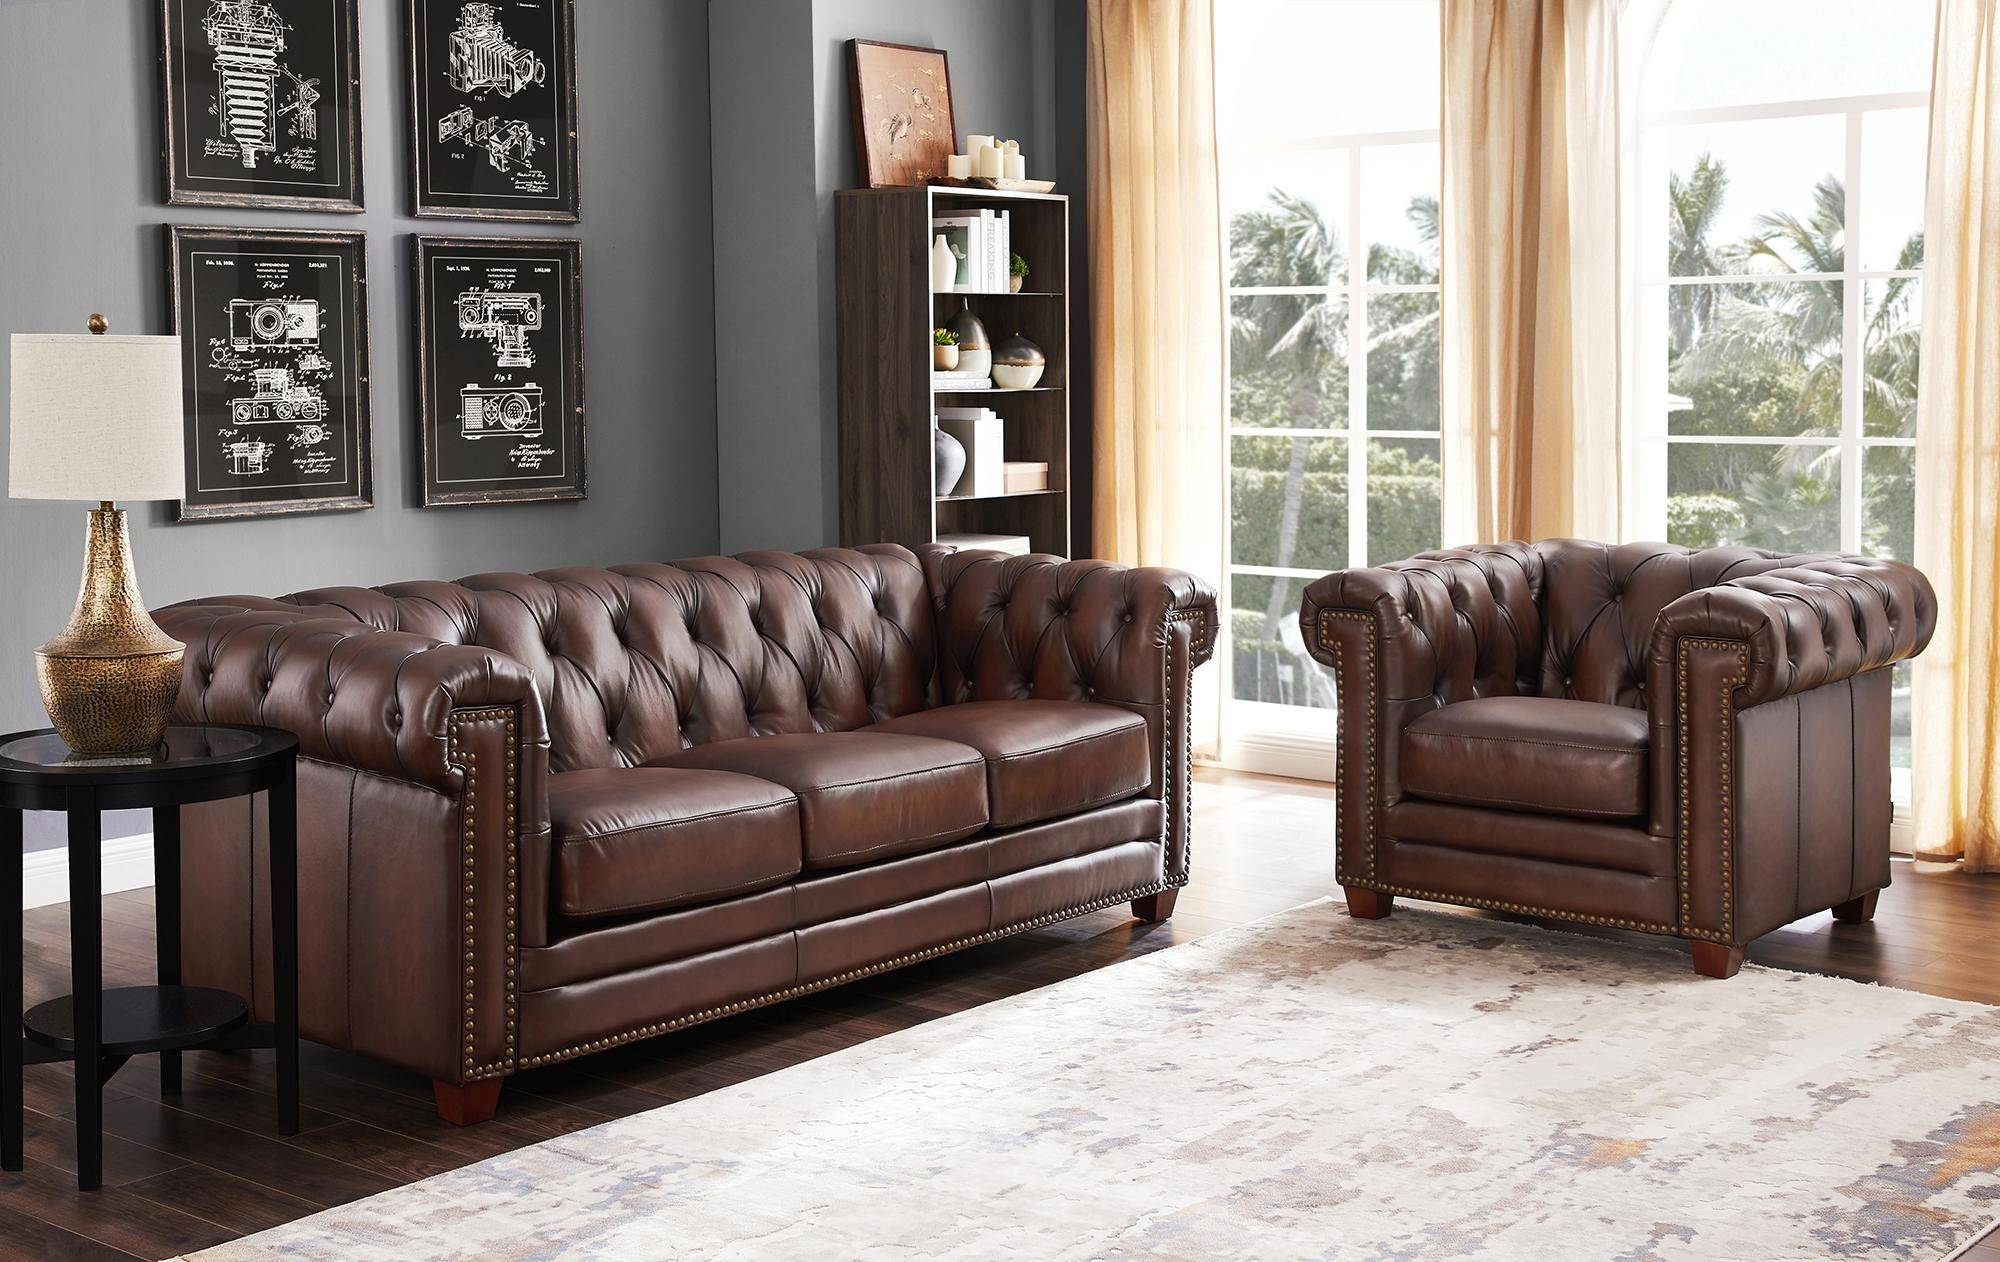 Dark Brown Stanwood Genuine Leather Sofa Set 3pcs Hydeline